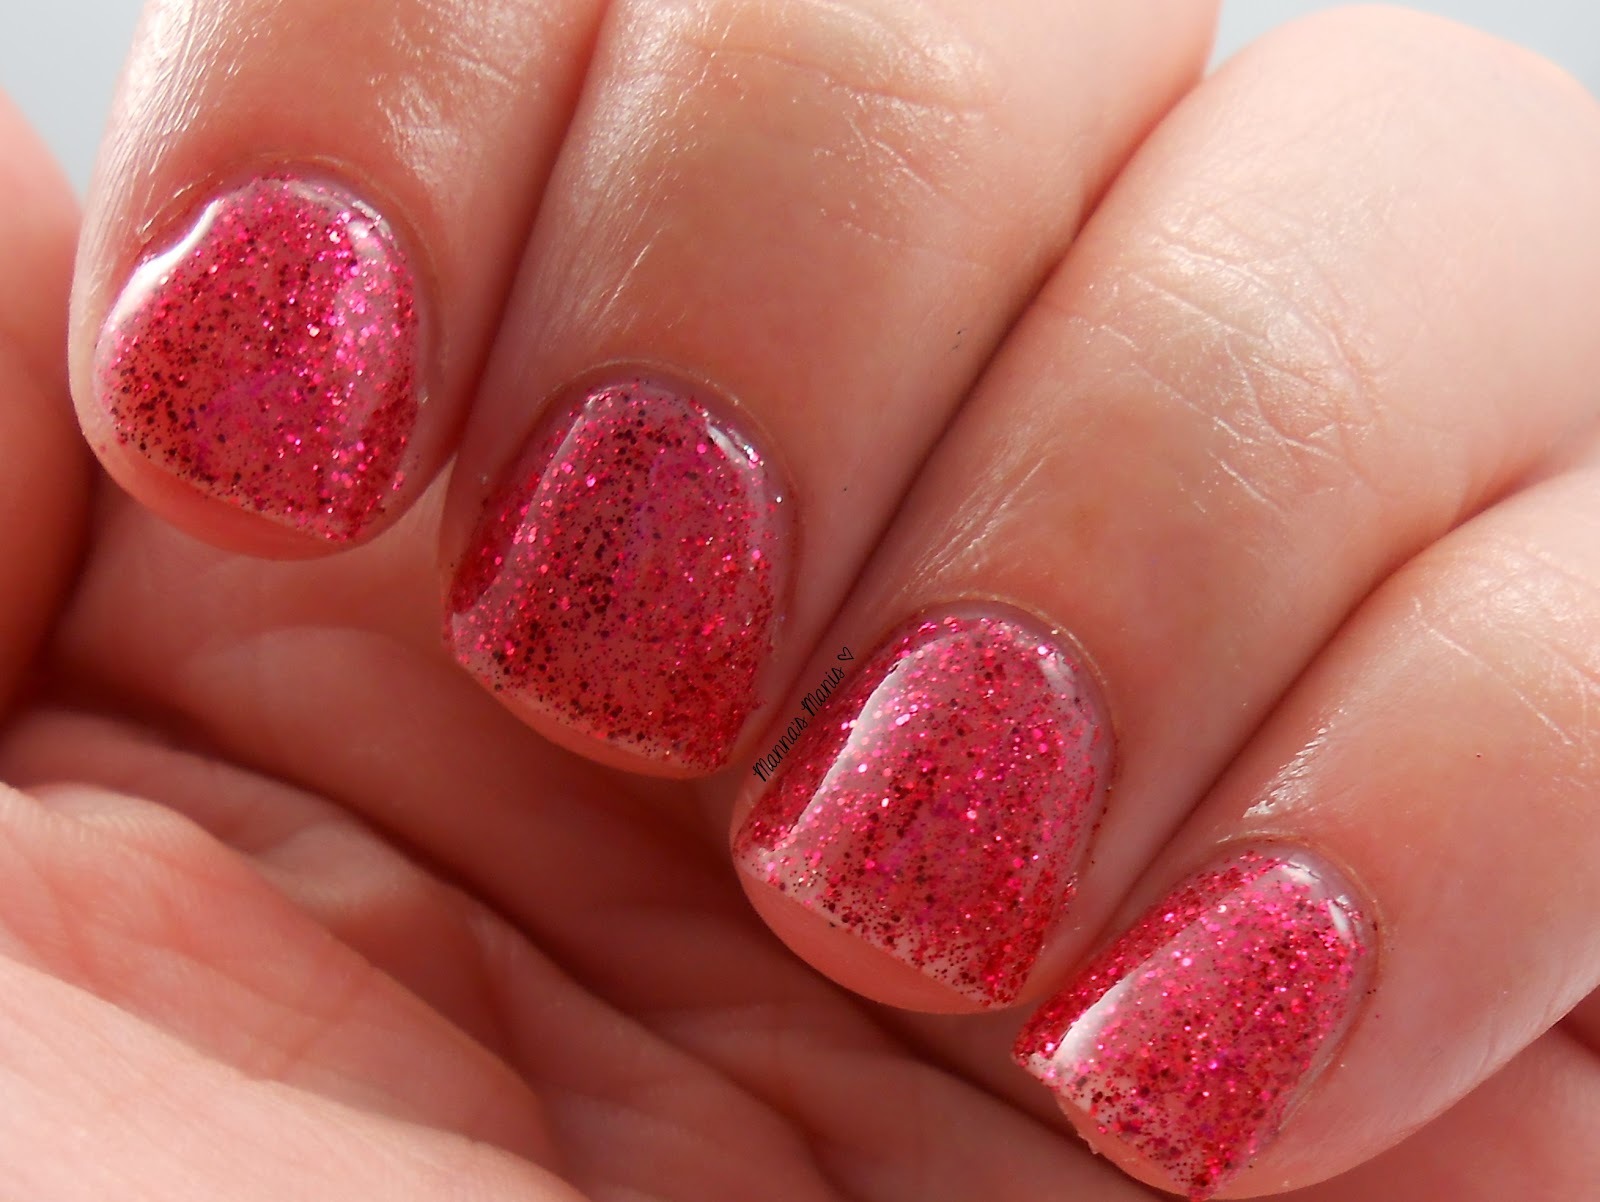 fingerpaints sugar and spice, a full coverage red microglitter nail polish